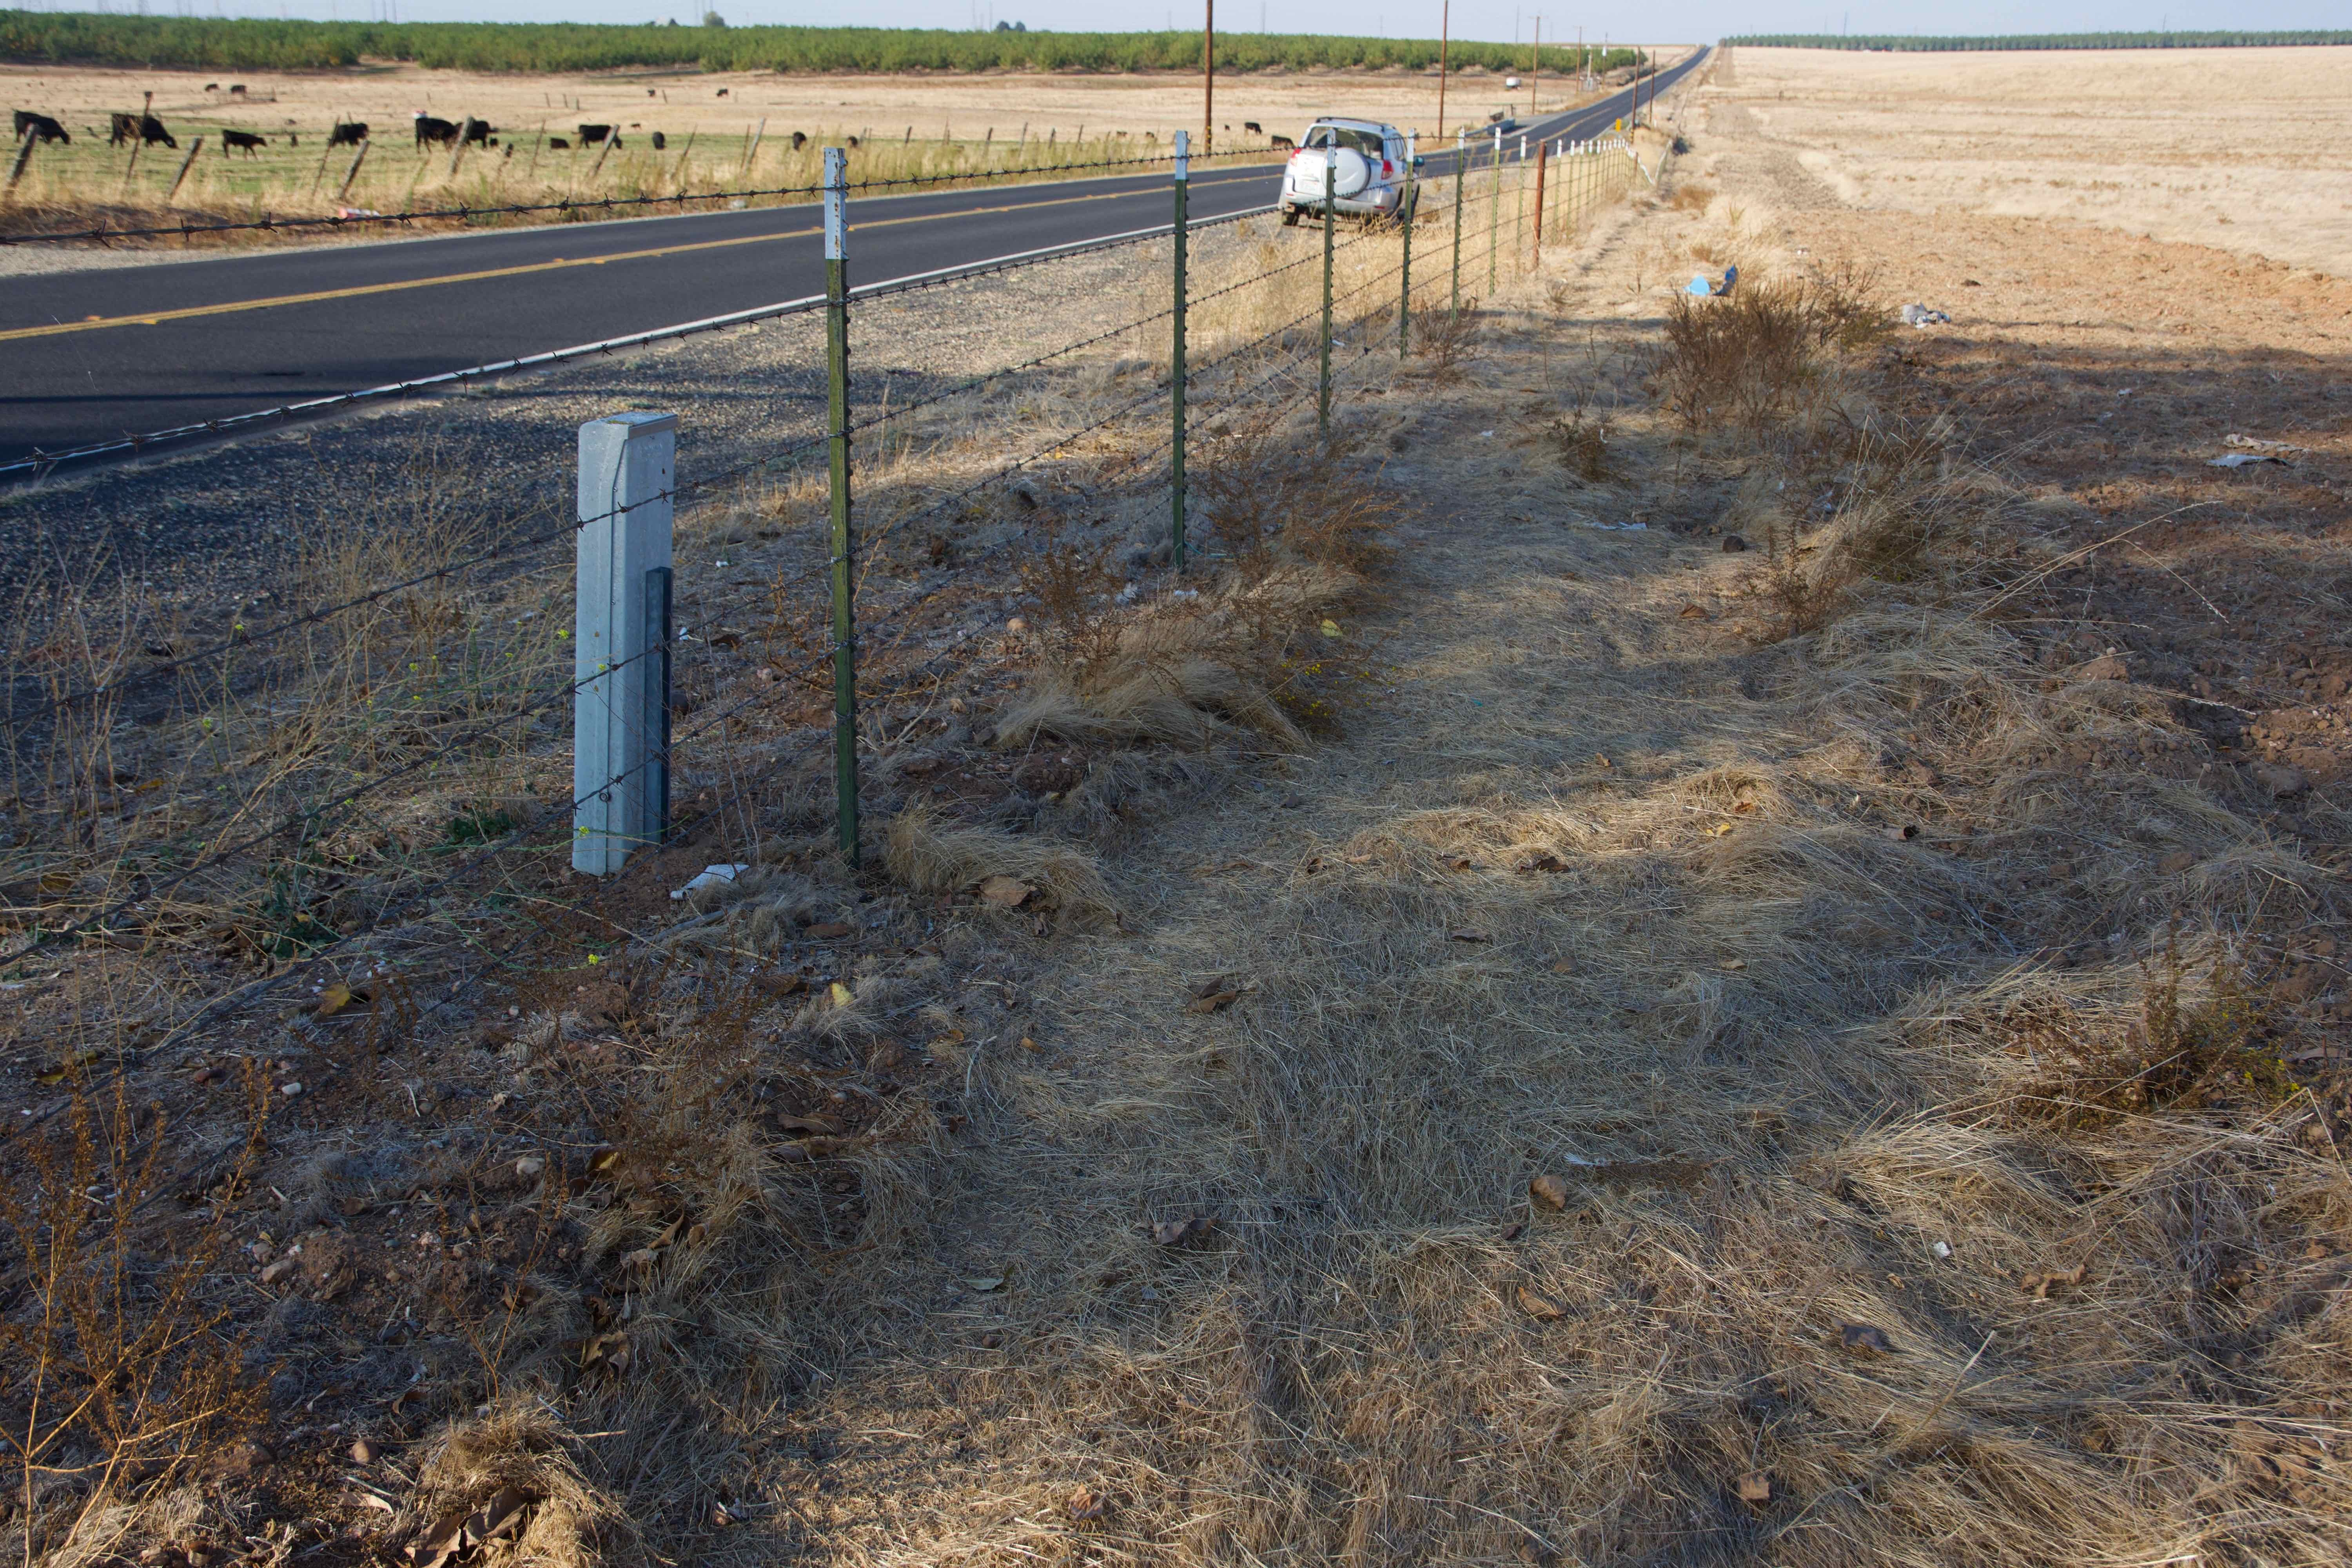 The confluence point lies just inside this farm fence, next to the Escalon-Bellota Road